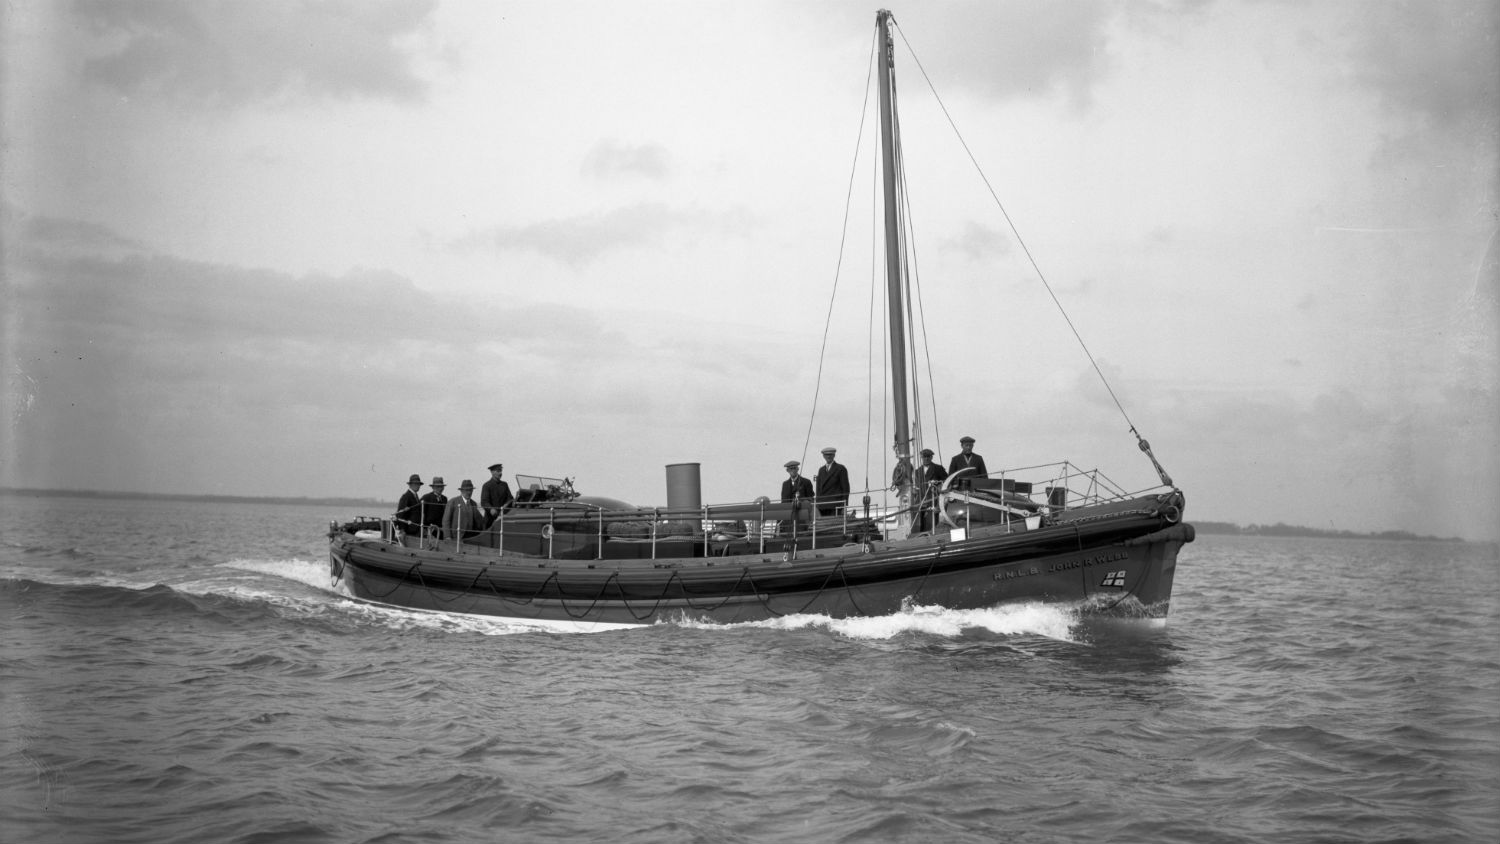 Black and white image of Tenby lifeboat, John R. Webb, while on trials